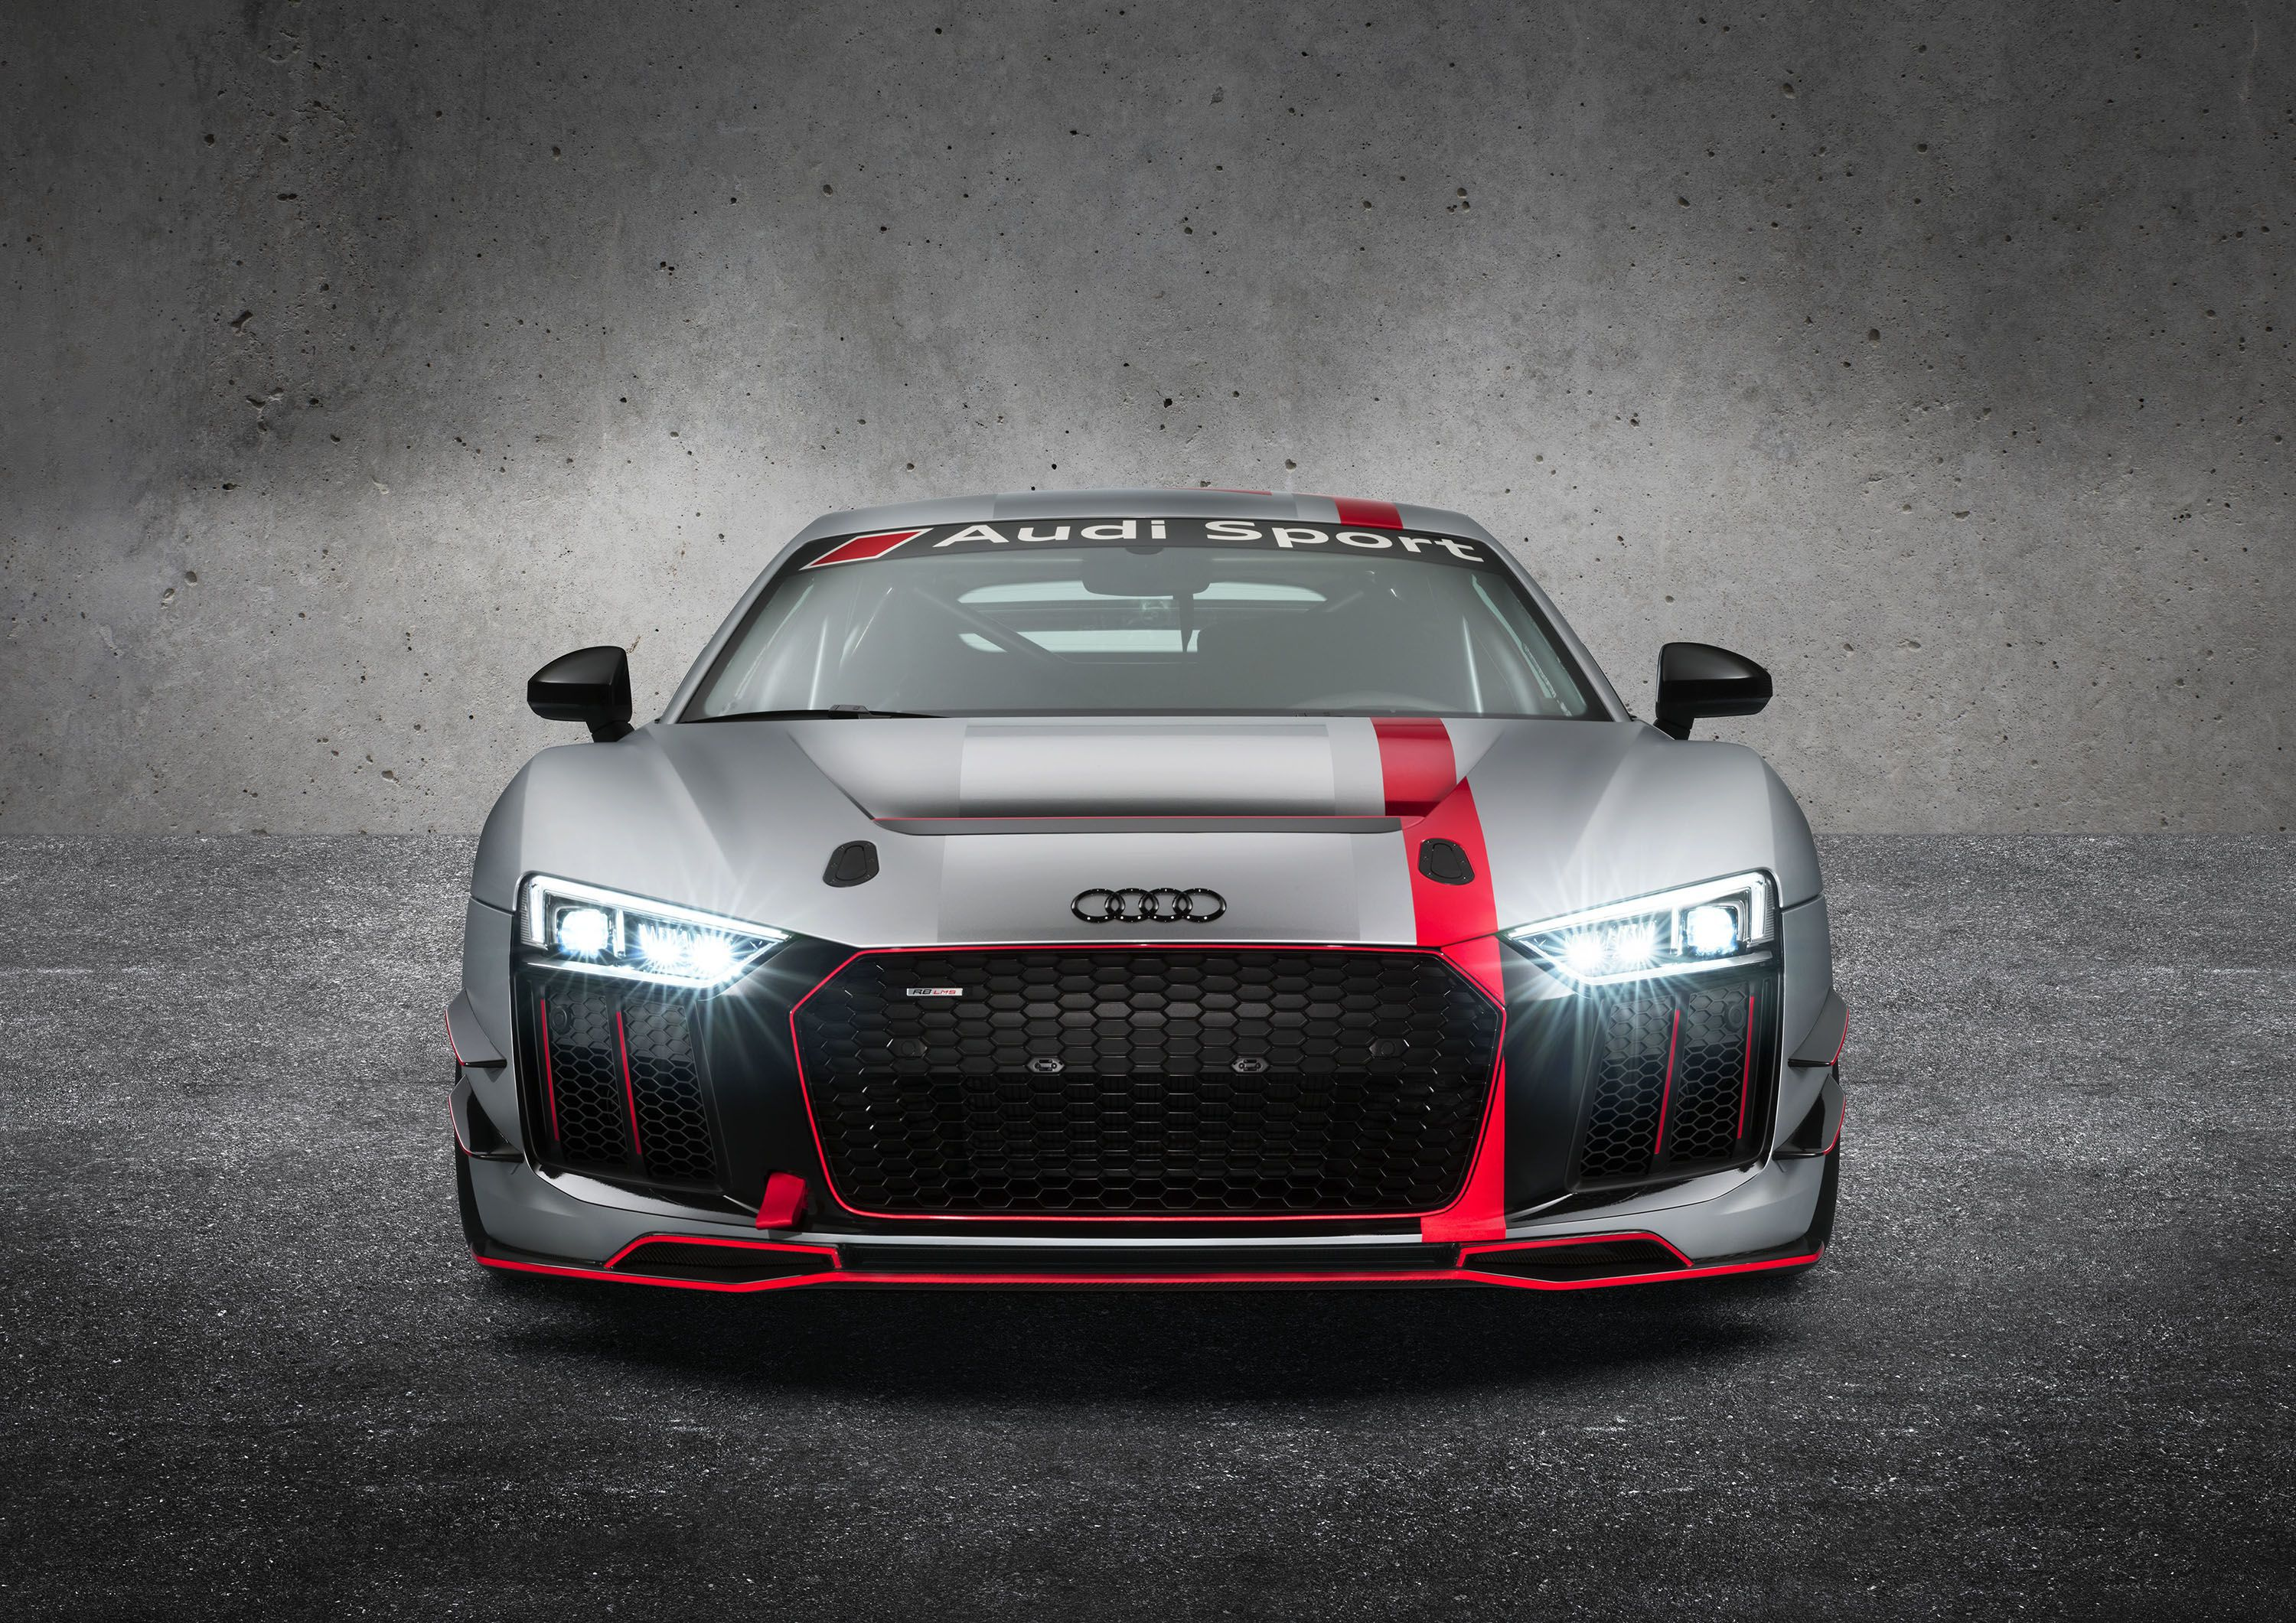 Audi R8 Lms Gt4 Hd Cars 4k Wallpapers Images Backgrounds 3d Wallpaper Cityconnectapps